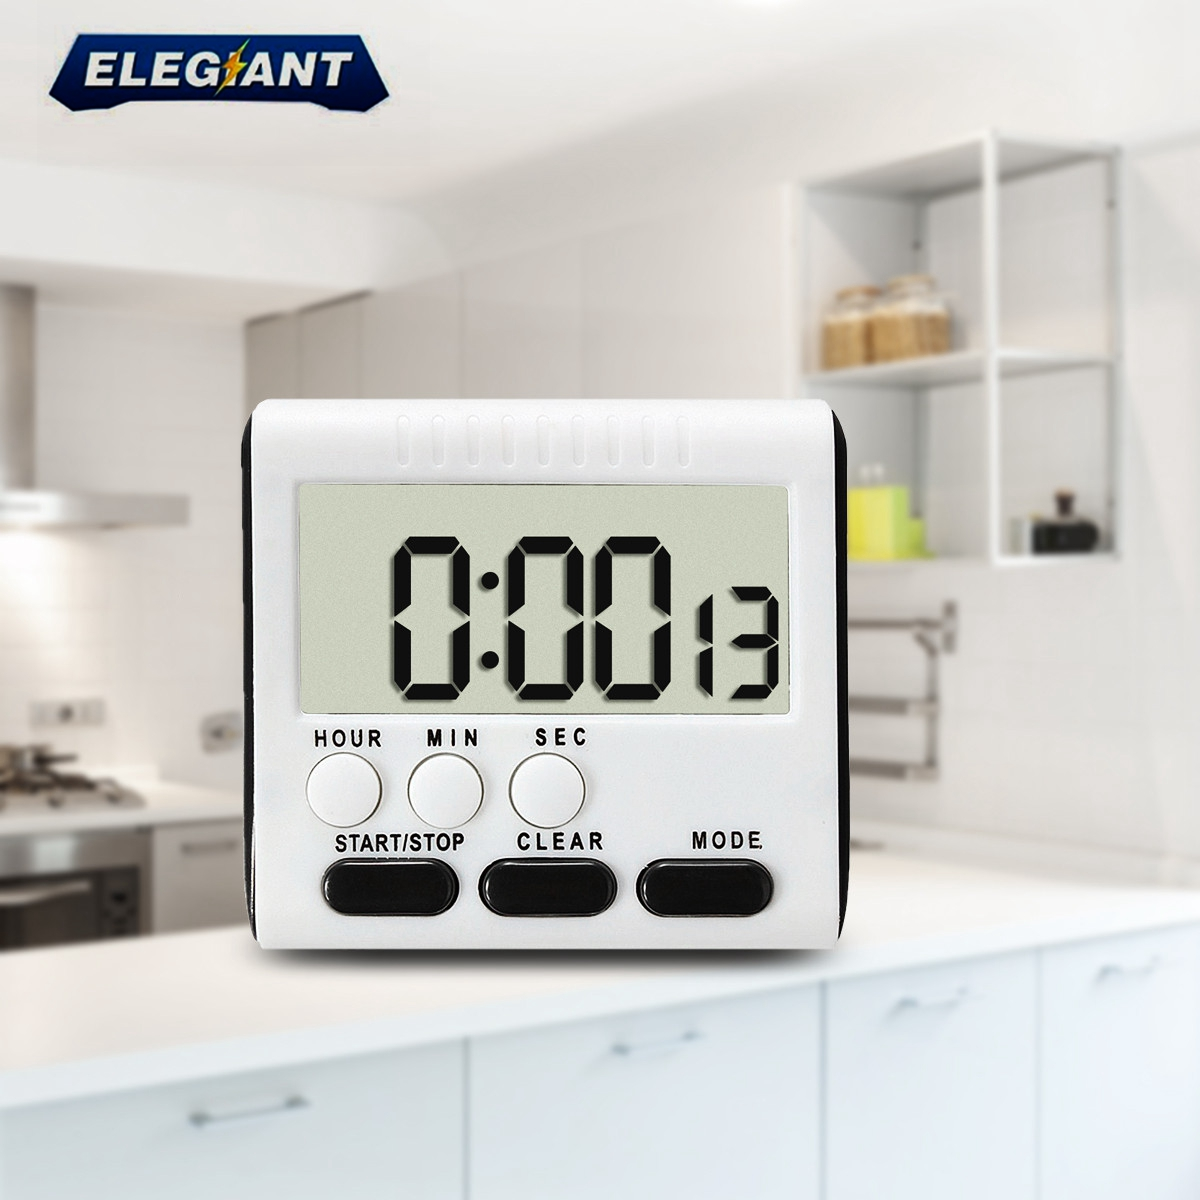 ELEGIANT Magnetic Kitchen Timer Alarm Clock LCD Digital Cooking Count Up Down Clock Blue Orange Black Three Colcr,Blue color